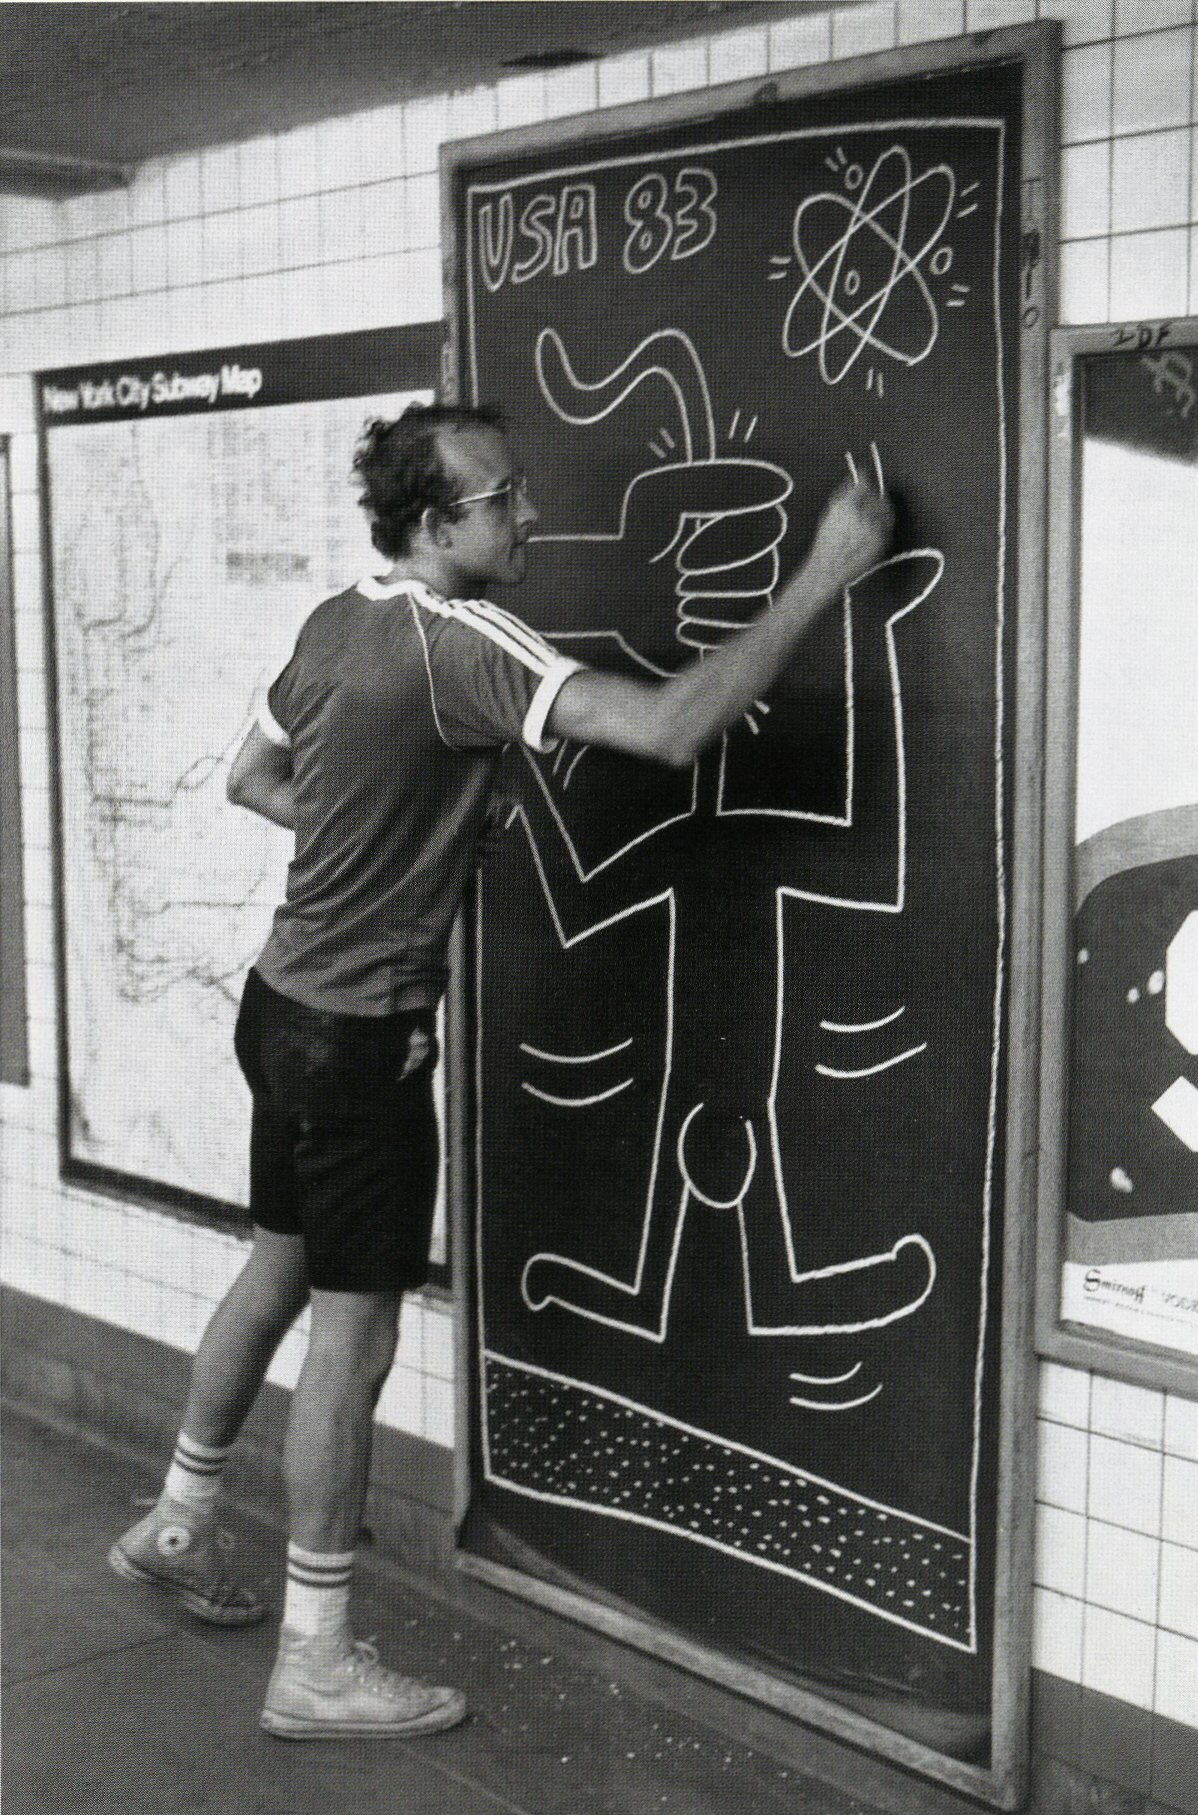 Haring drawing in the New York City subway system. (photo courtesy of the Keith Haring Foundation)